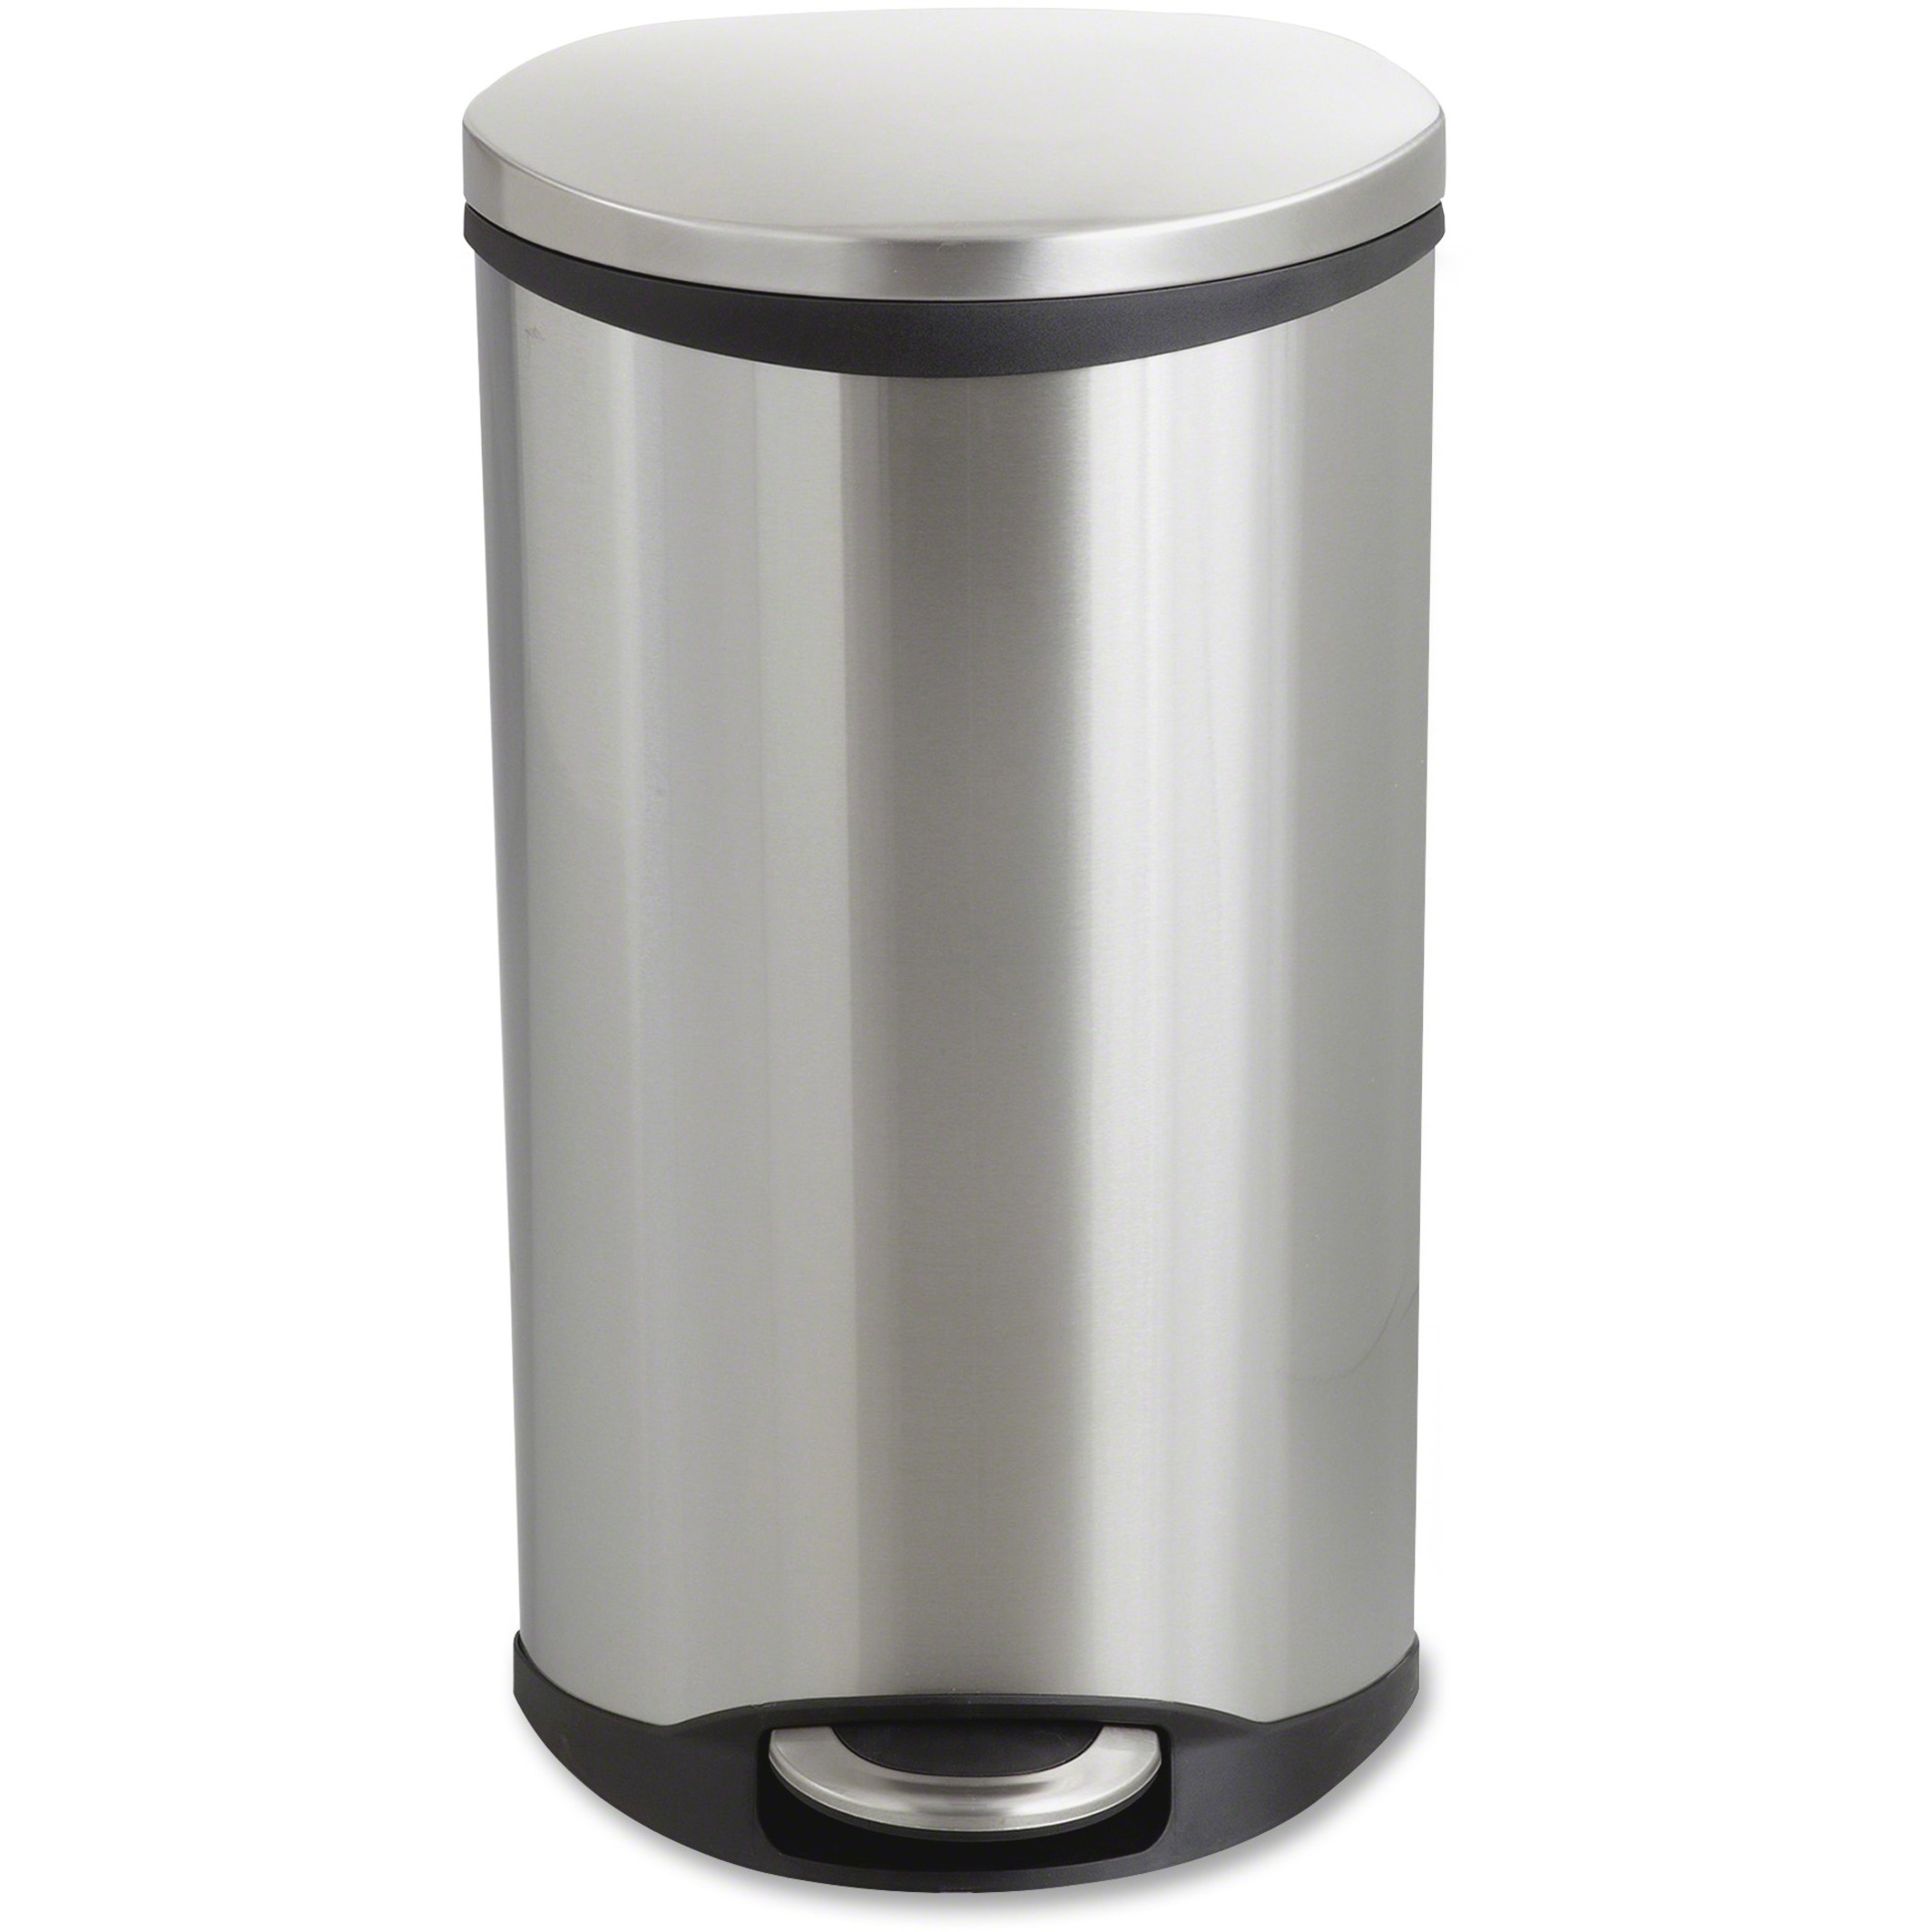 Step-On Medical Receptacle, 7.5gal, Stainless Steel